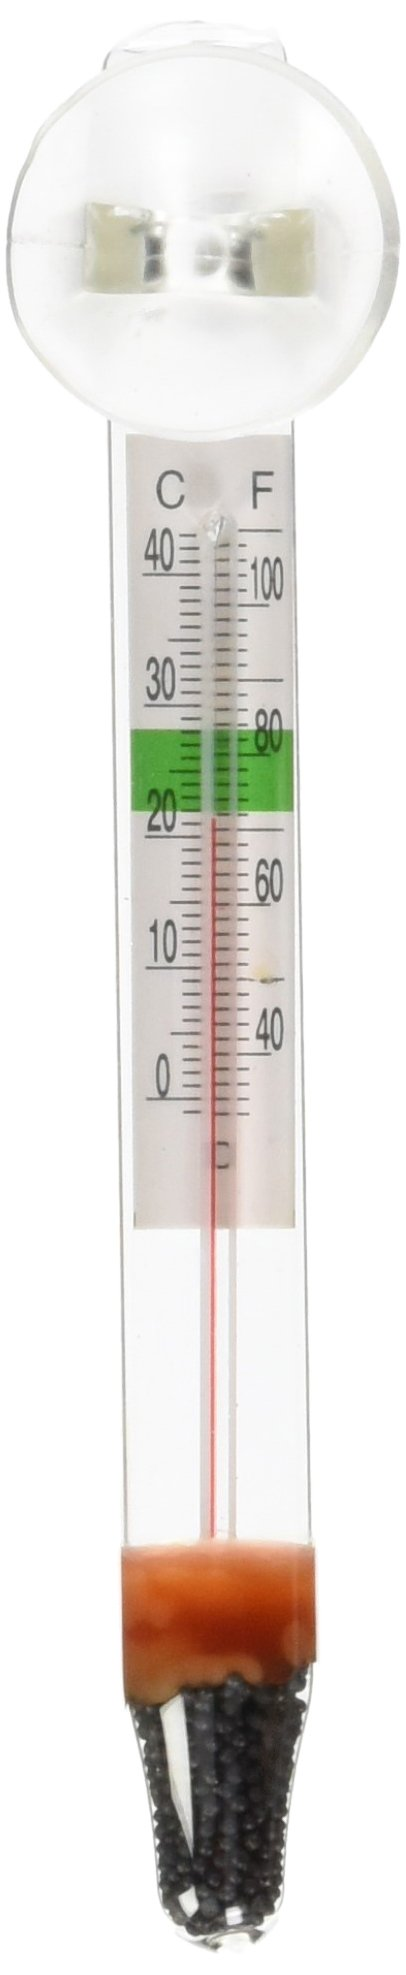 Hydrofarm Active Aqua HGFLT Floating Thermometer